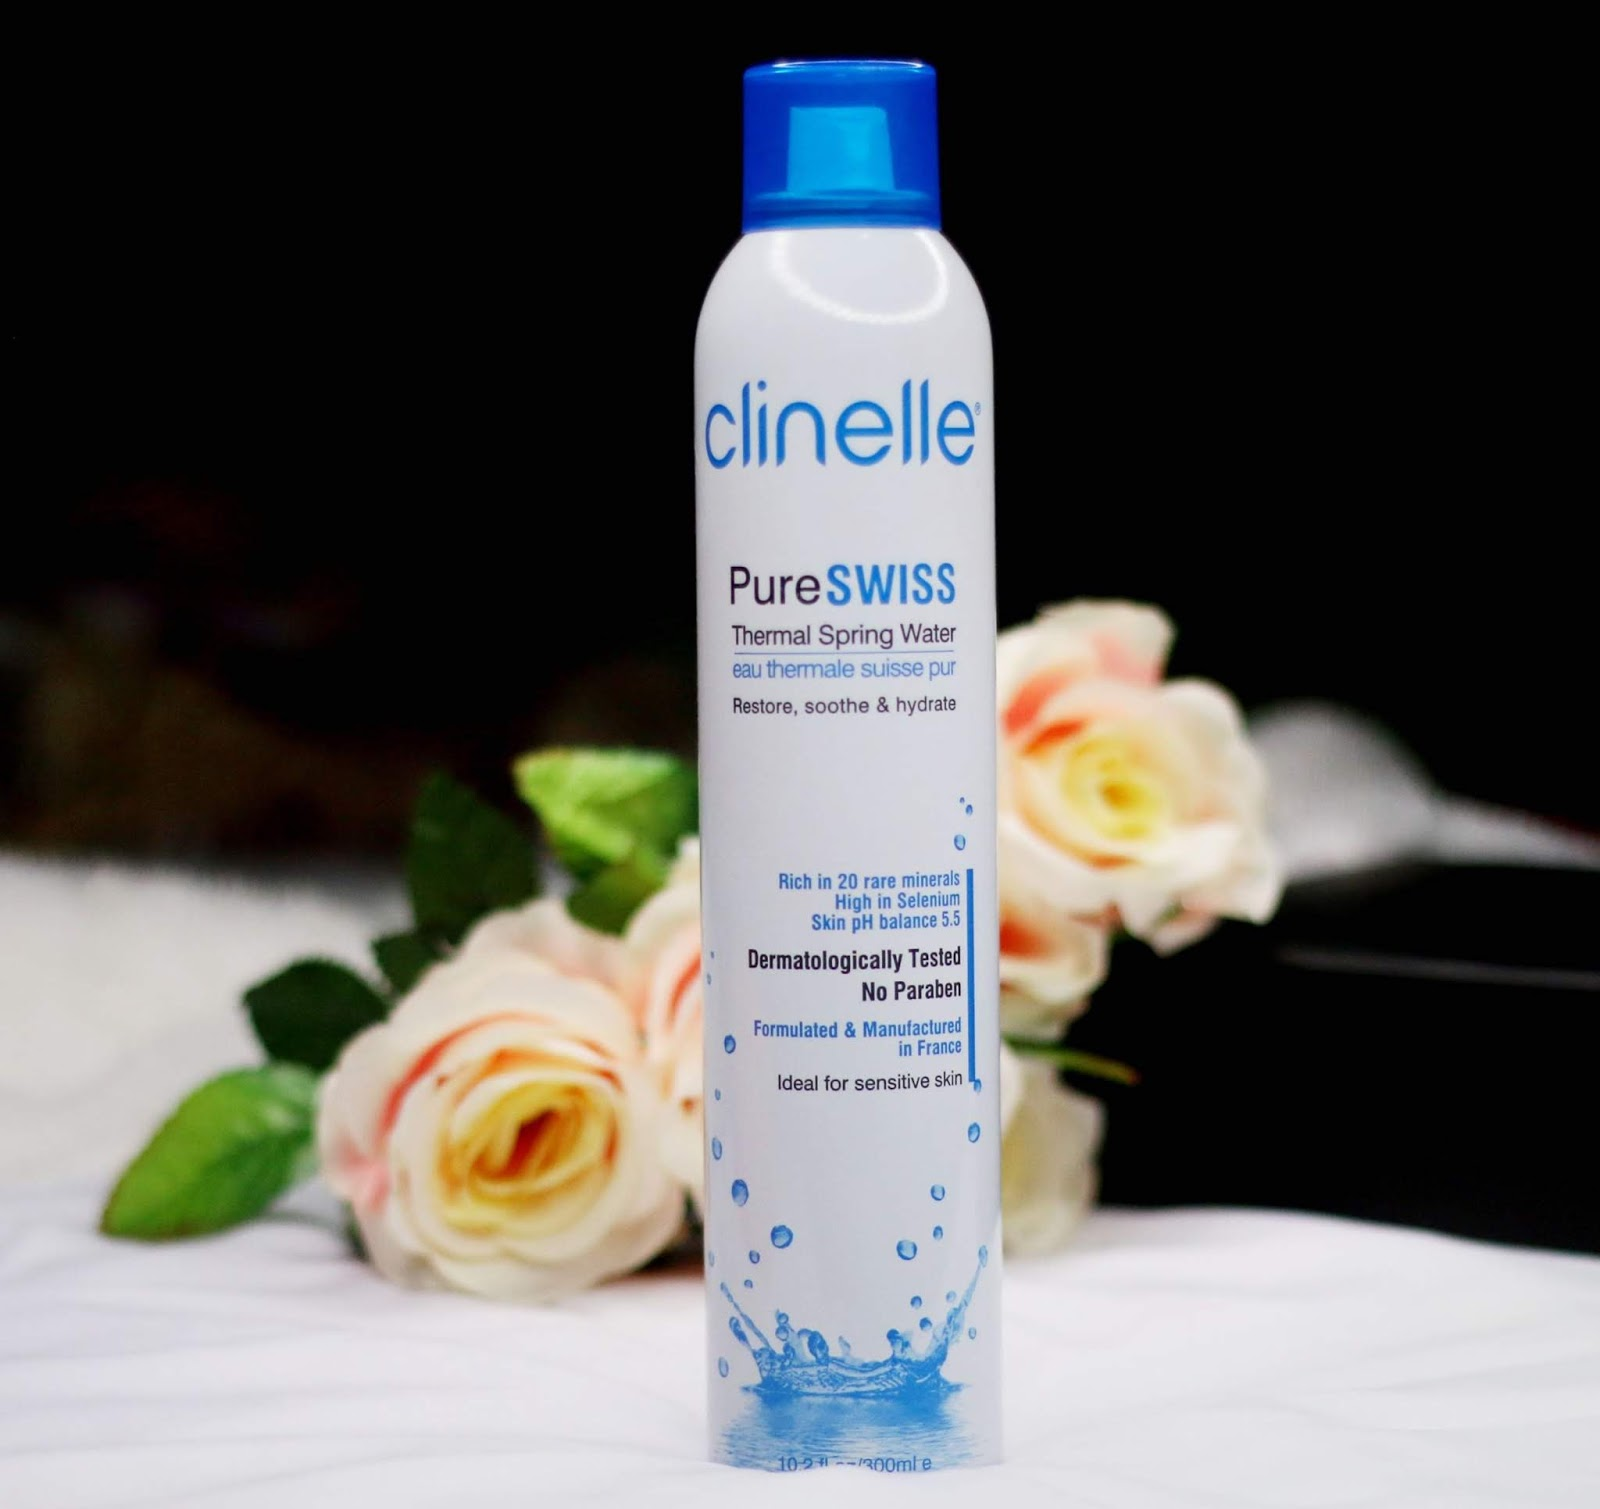 Clinelle-Pure-Swiss-Thermal-Spring-Water-Review